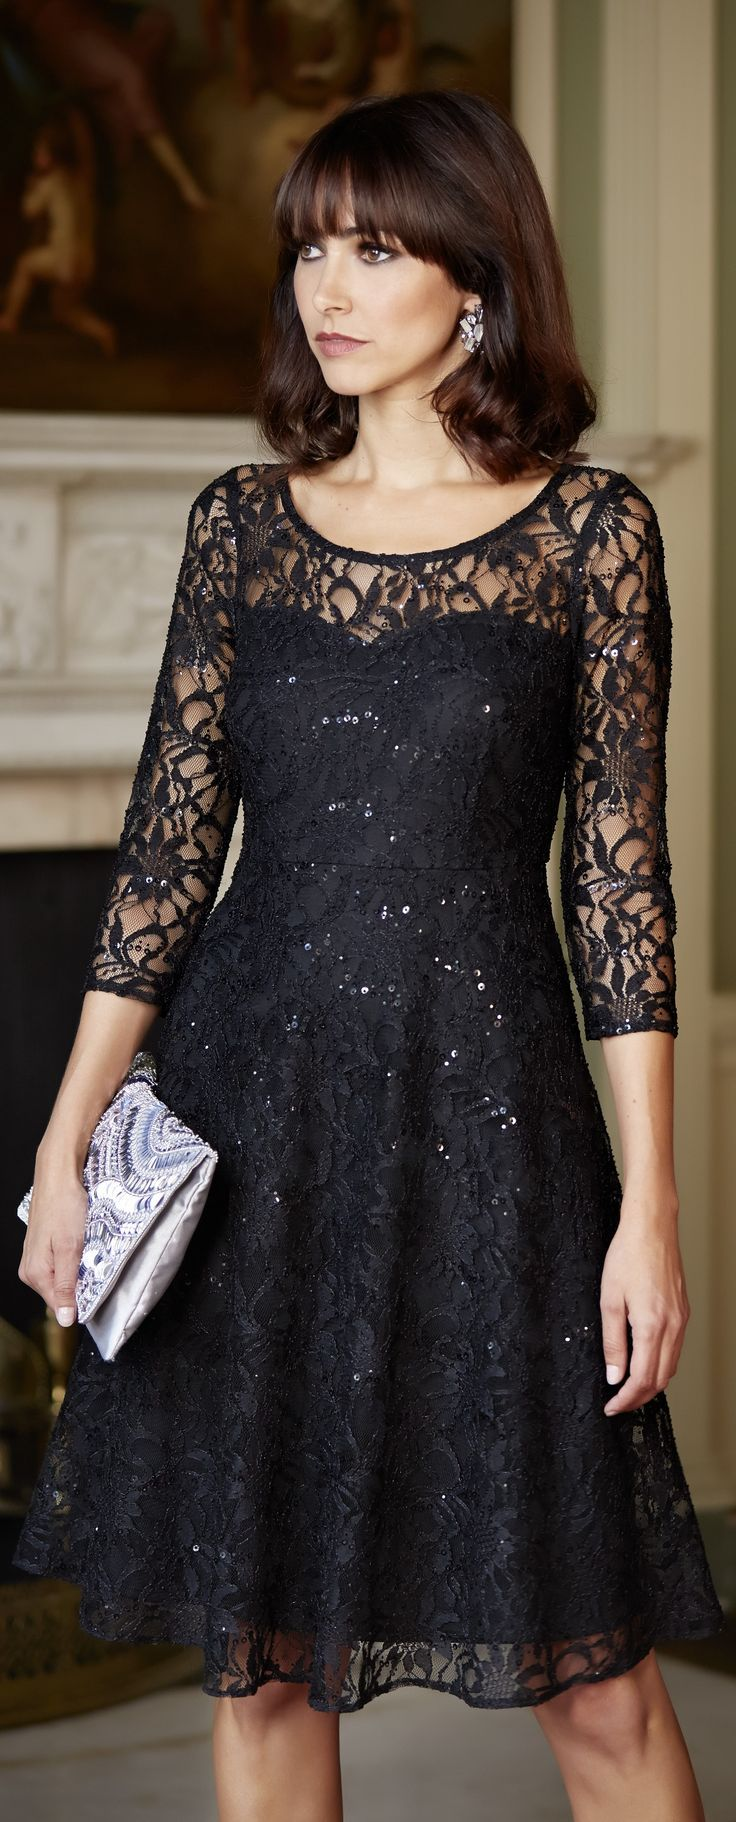 Black dress to wear to a wedding - Little Black Dress Perfect For A Fall Wedding Easy To Match Lace Short Dress